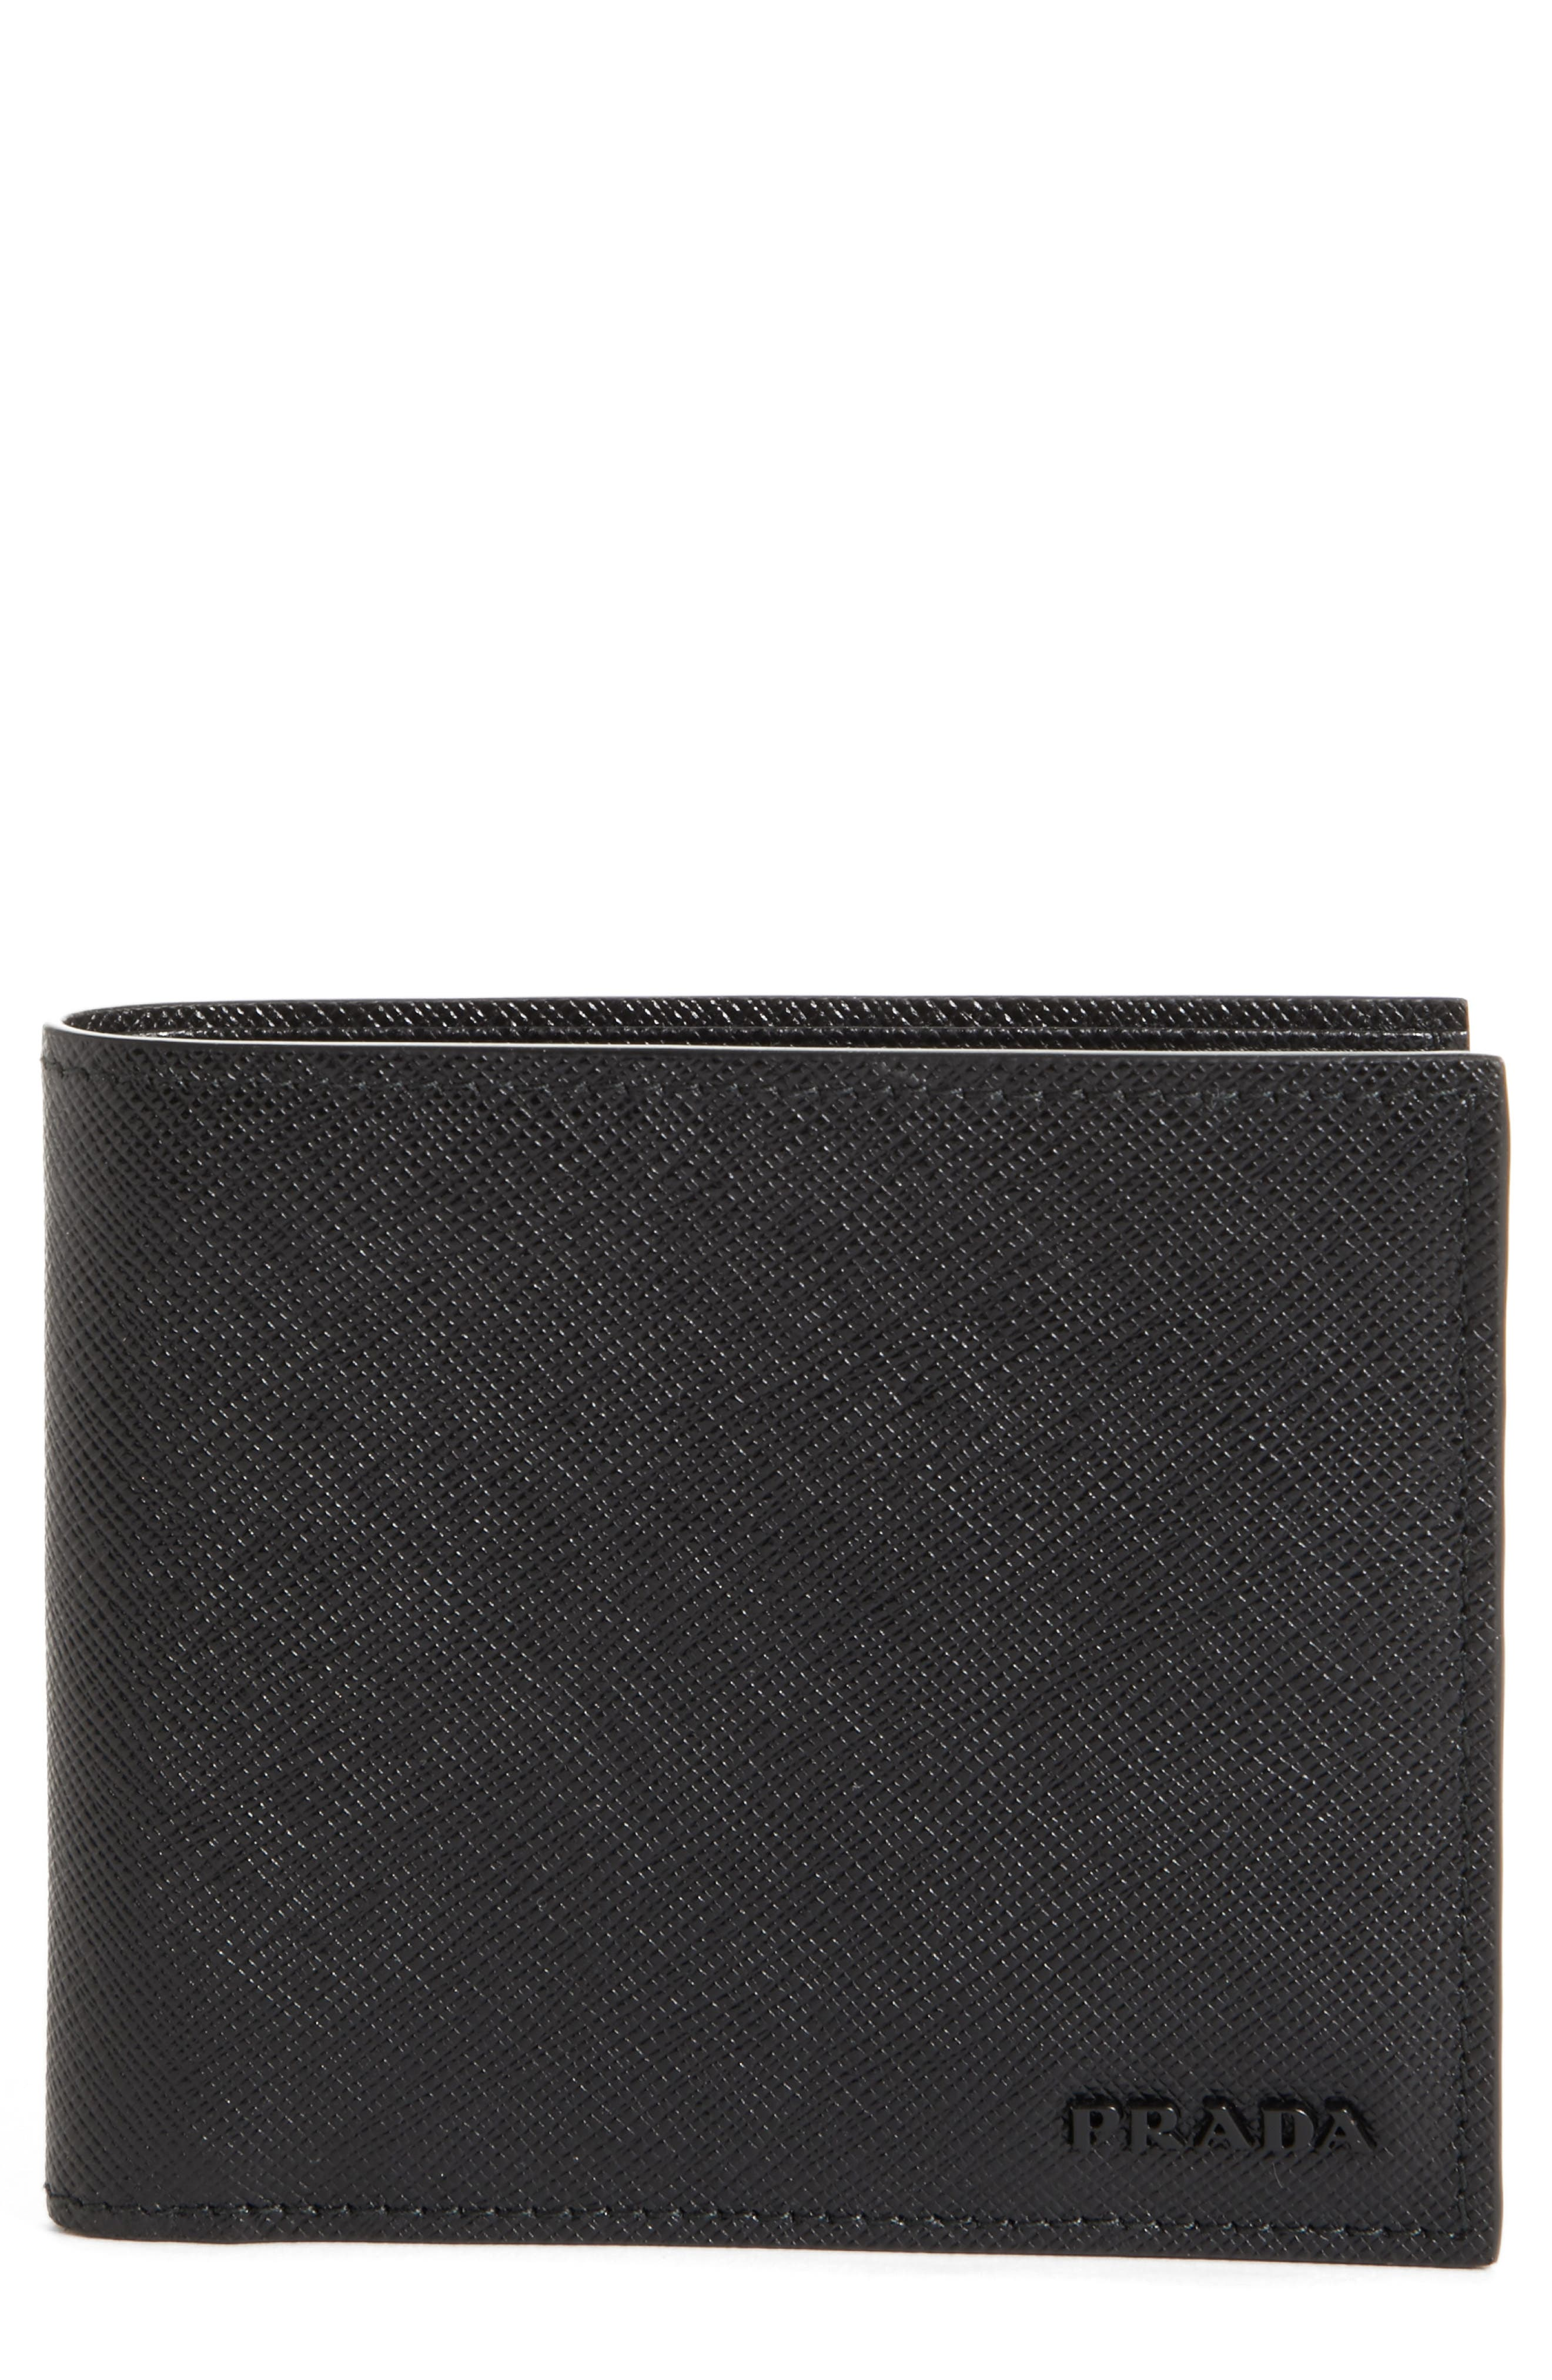 Alternate Image 1 Selected - Prada Saffiano Leather Bifold Wallet